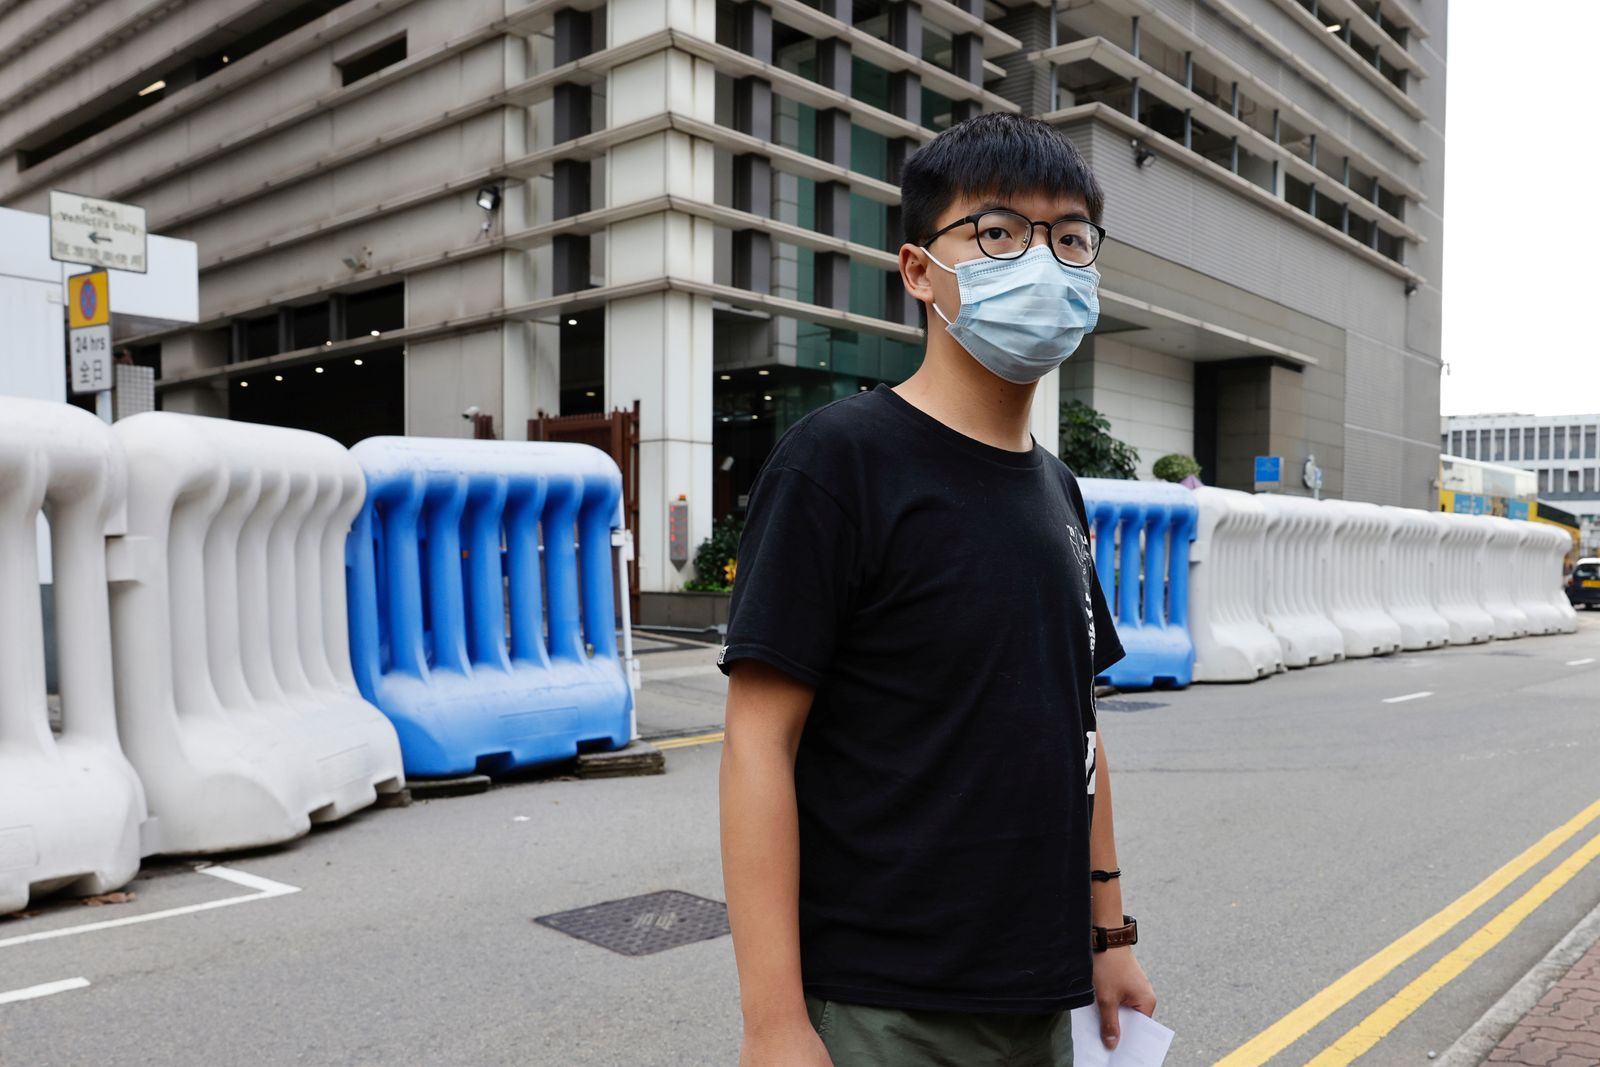 Pro-democracy activist Joshua Wong leaves a police station after being arrested for participating in an unauthorized assembly last year, in Hong Kong